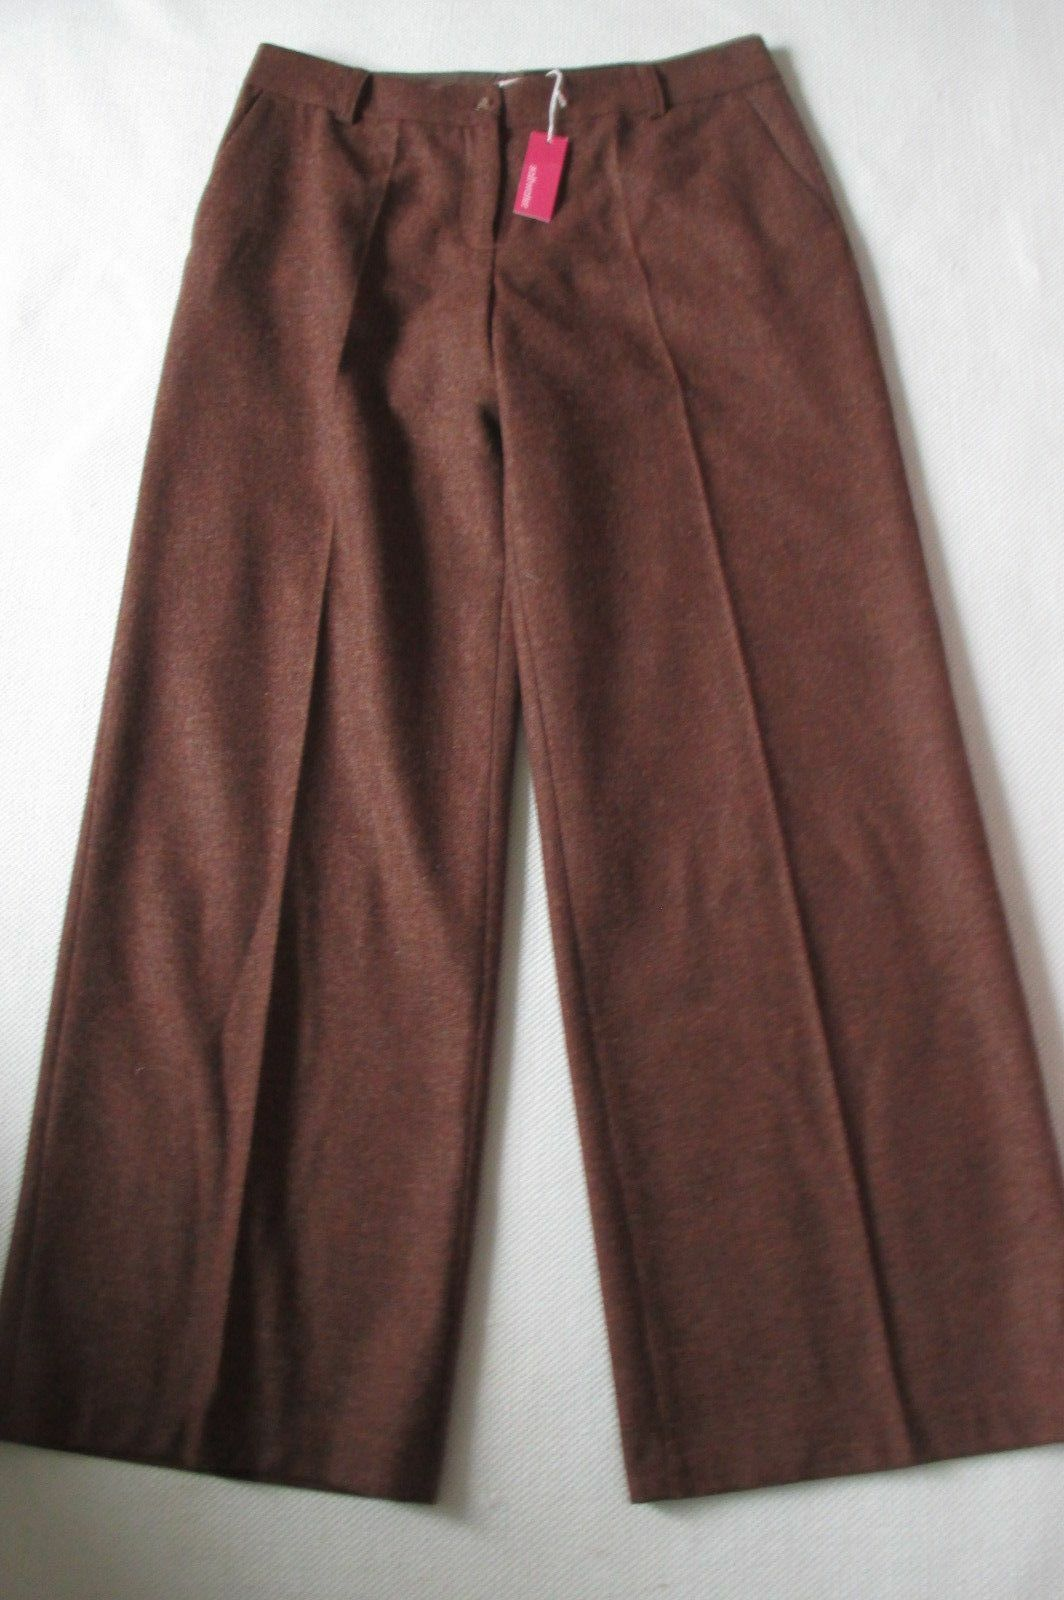 Saltwater rust brown  trousers size16, part lined, BNWT, fasten with front zip